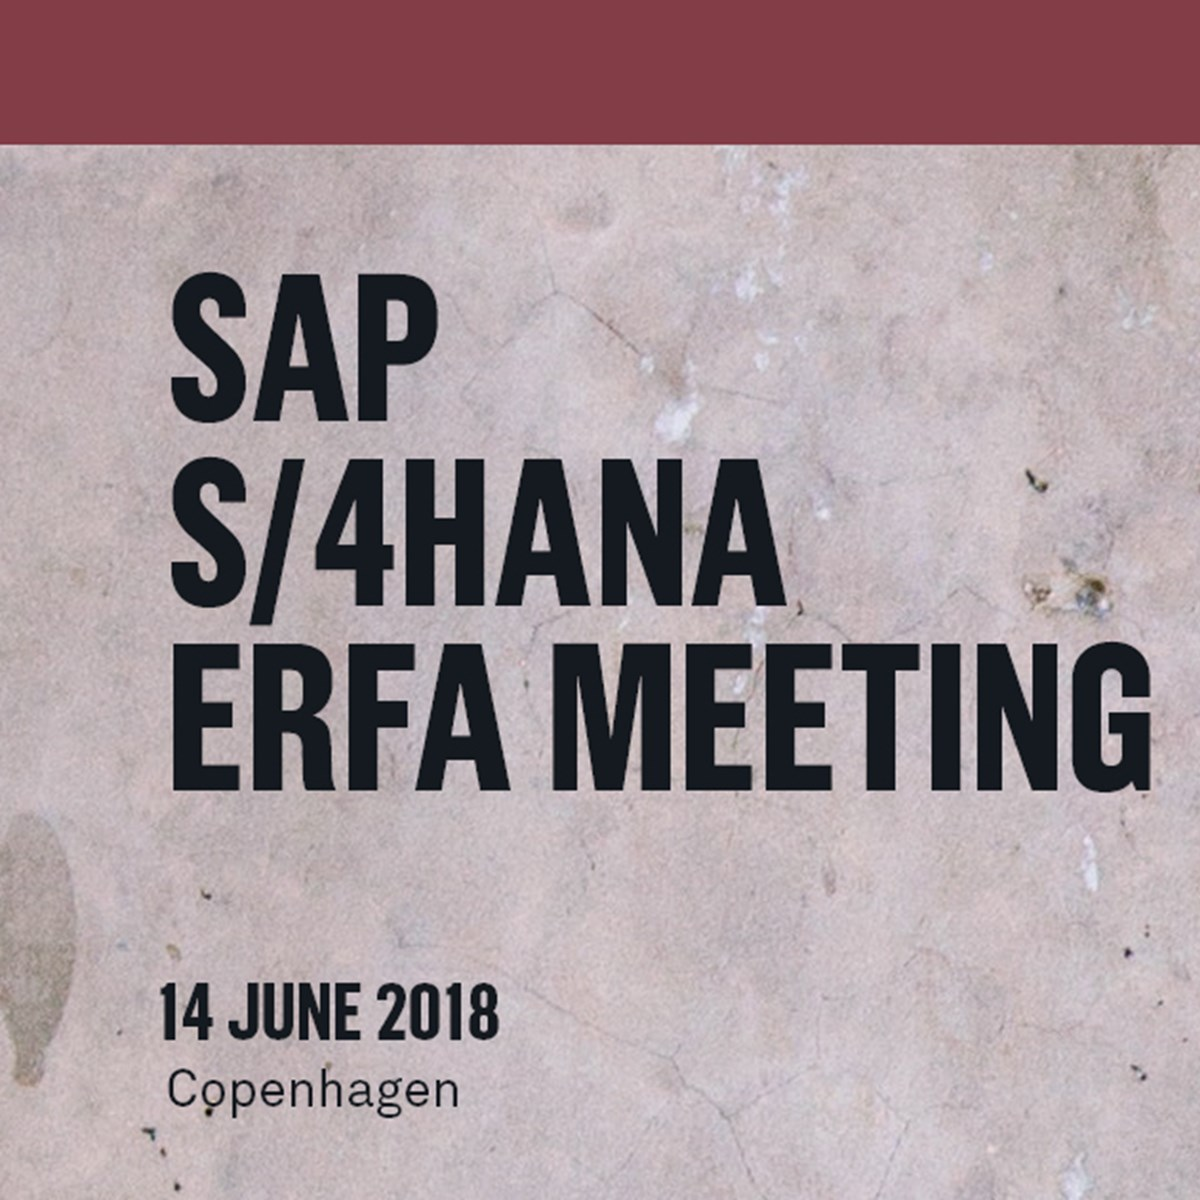 SAP S/4HANA ERFA meeting